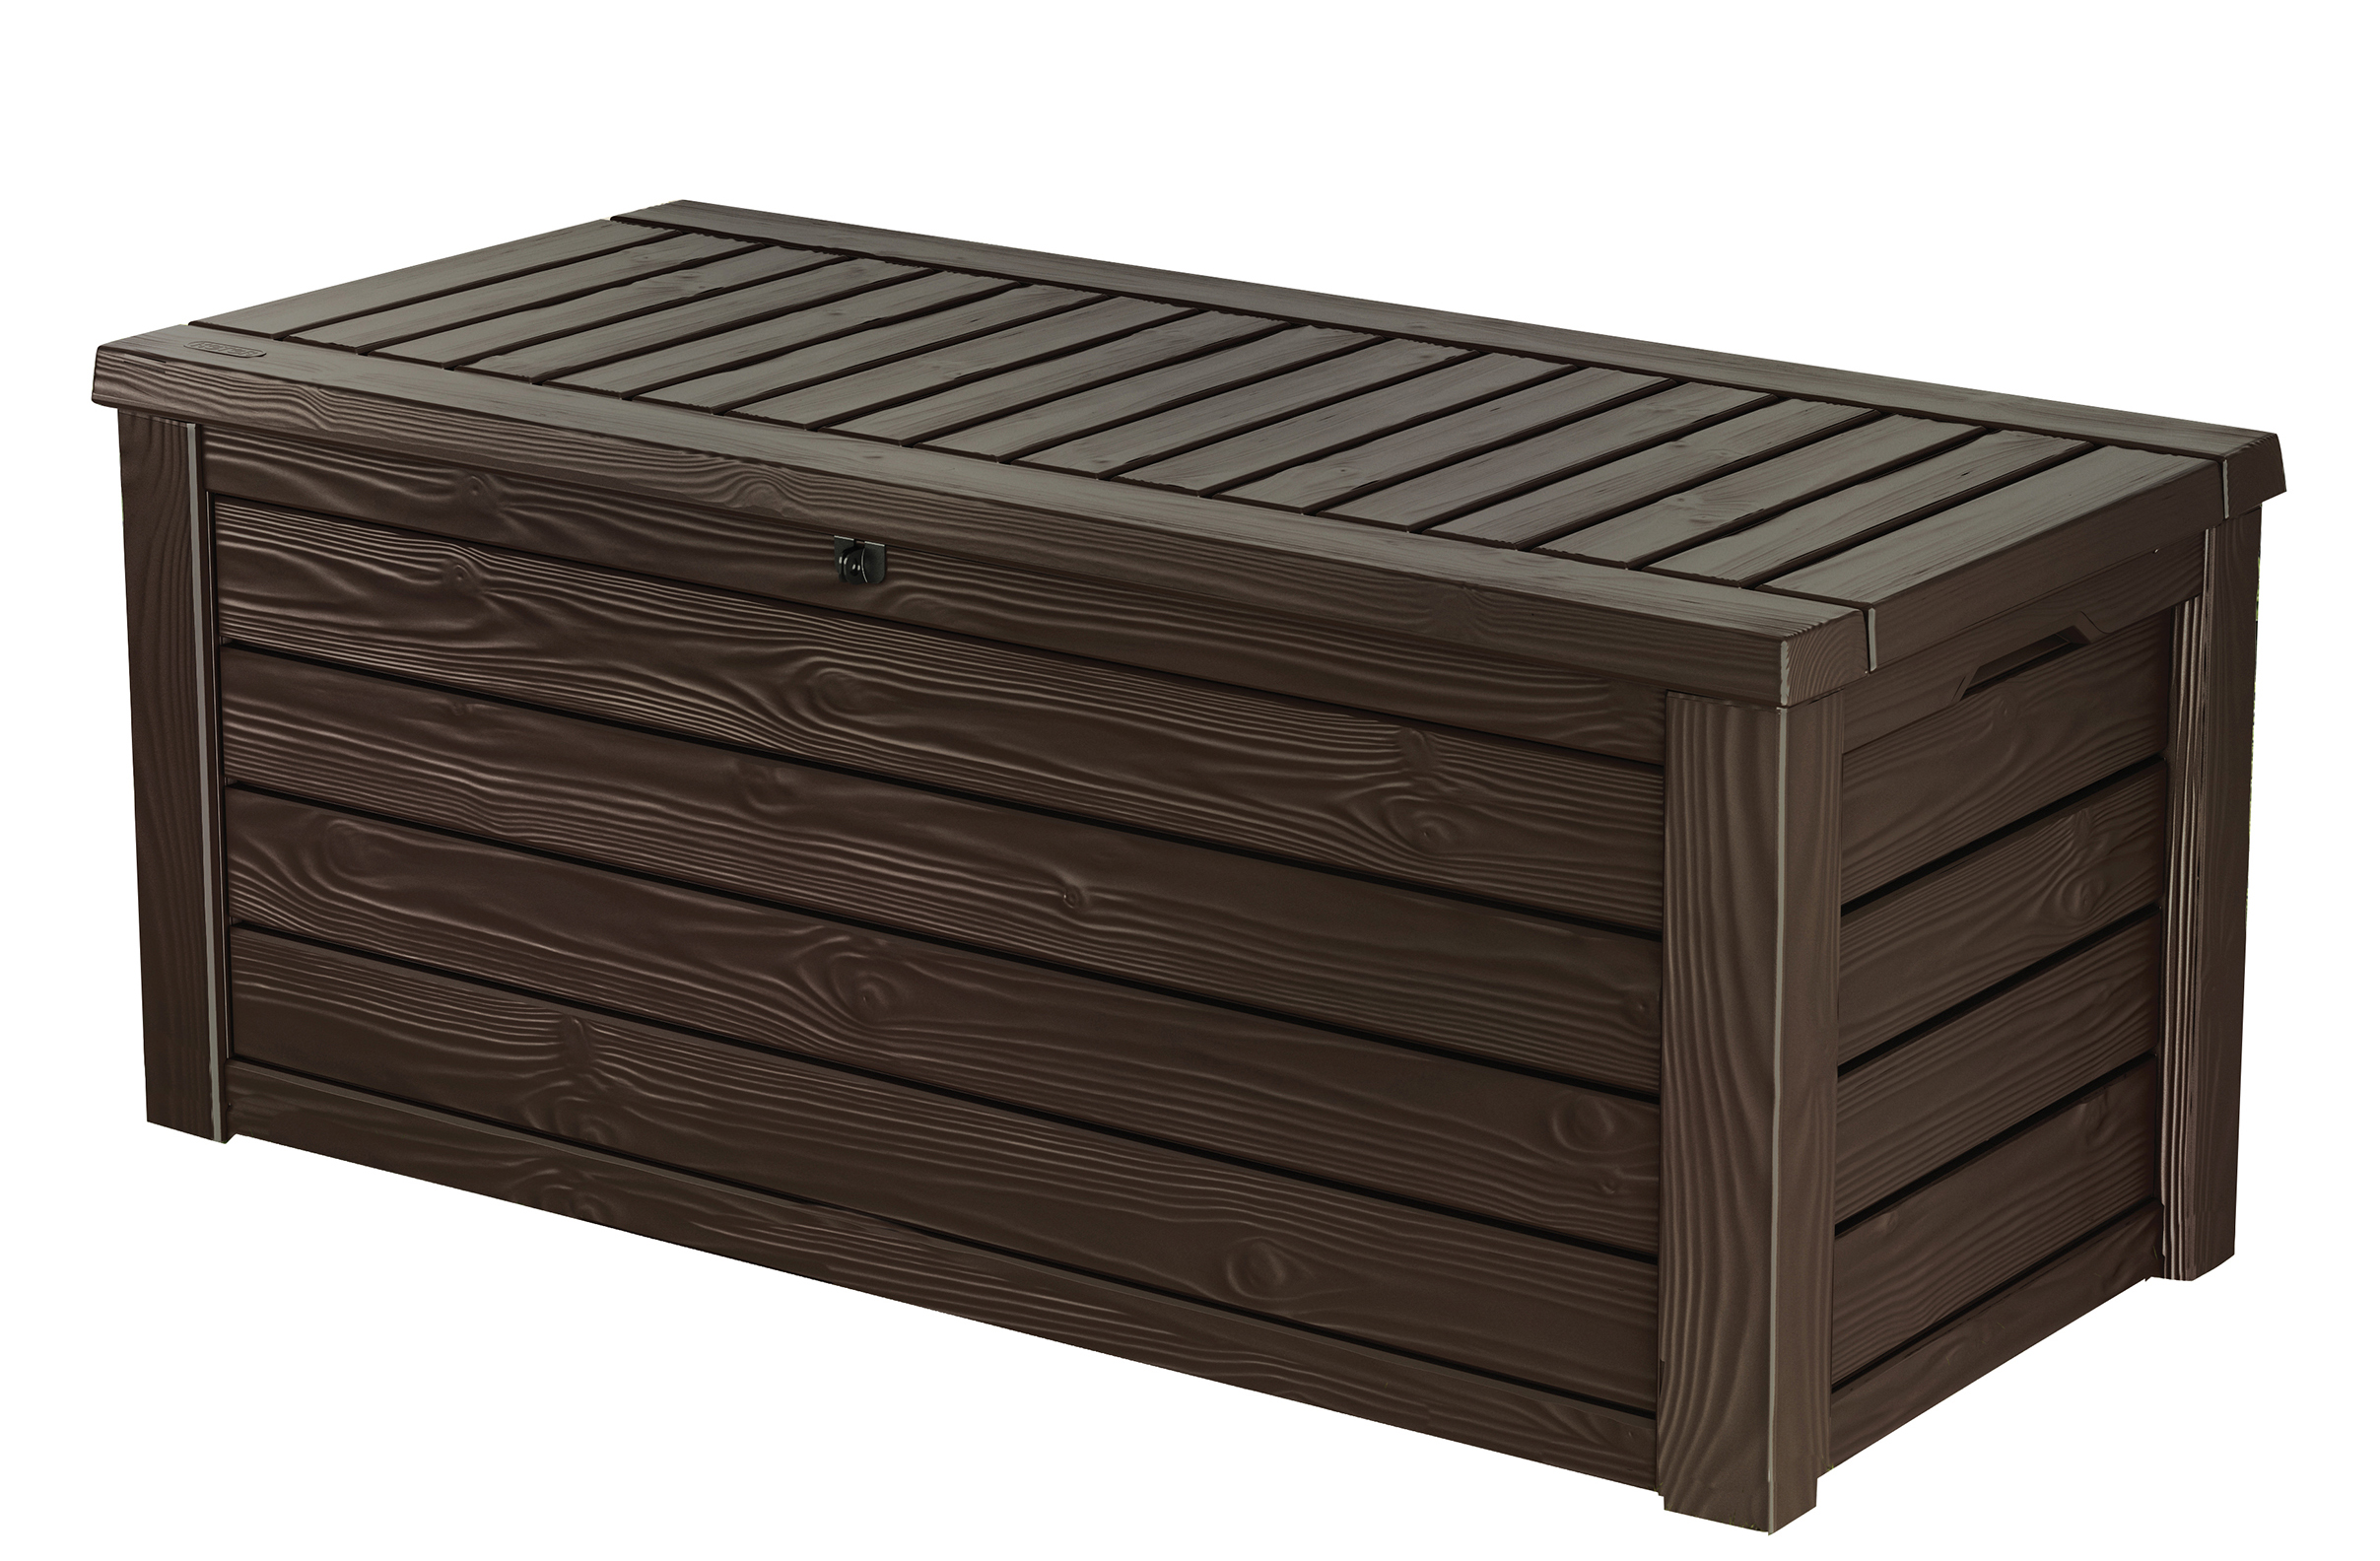 Keter Westwood 150 Gallon Outdoor Deck Box, Resin Patio Storage Bench Box